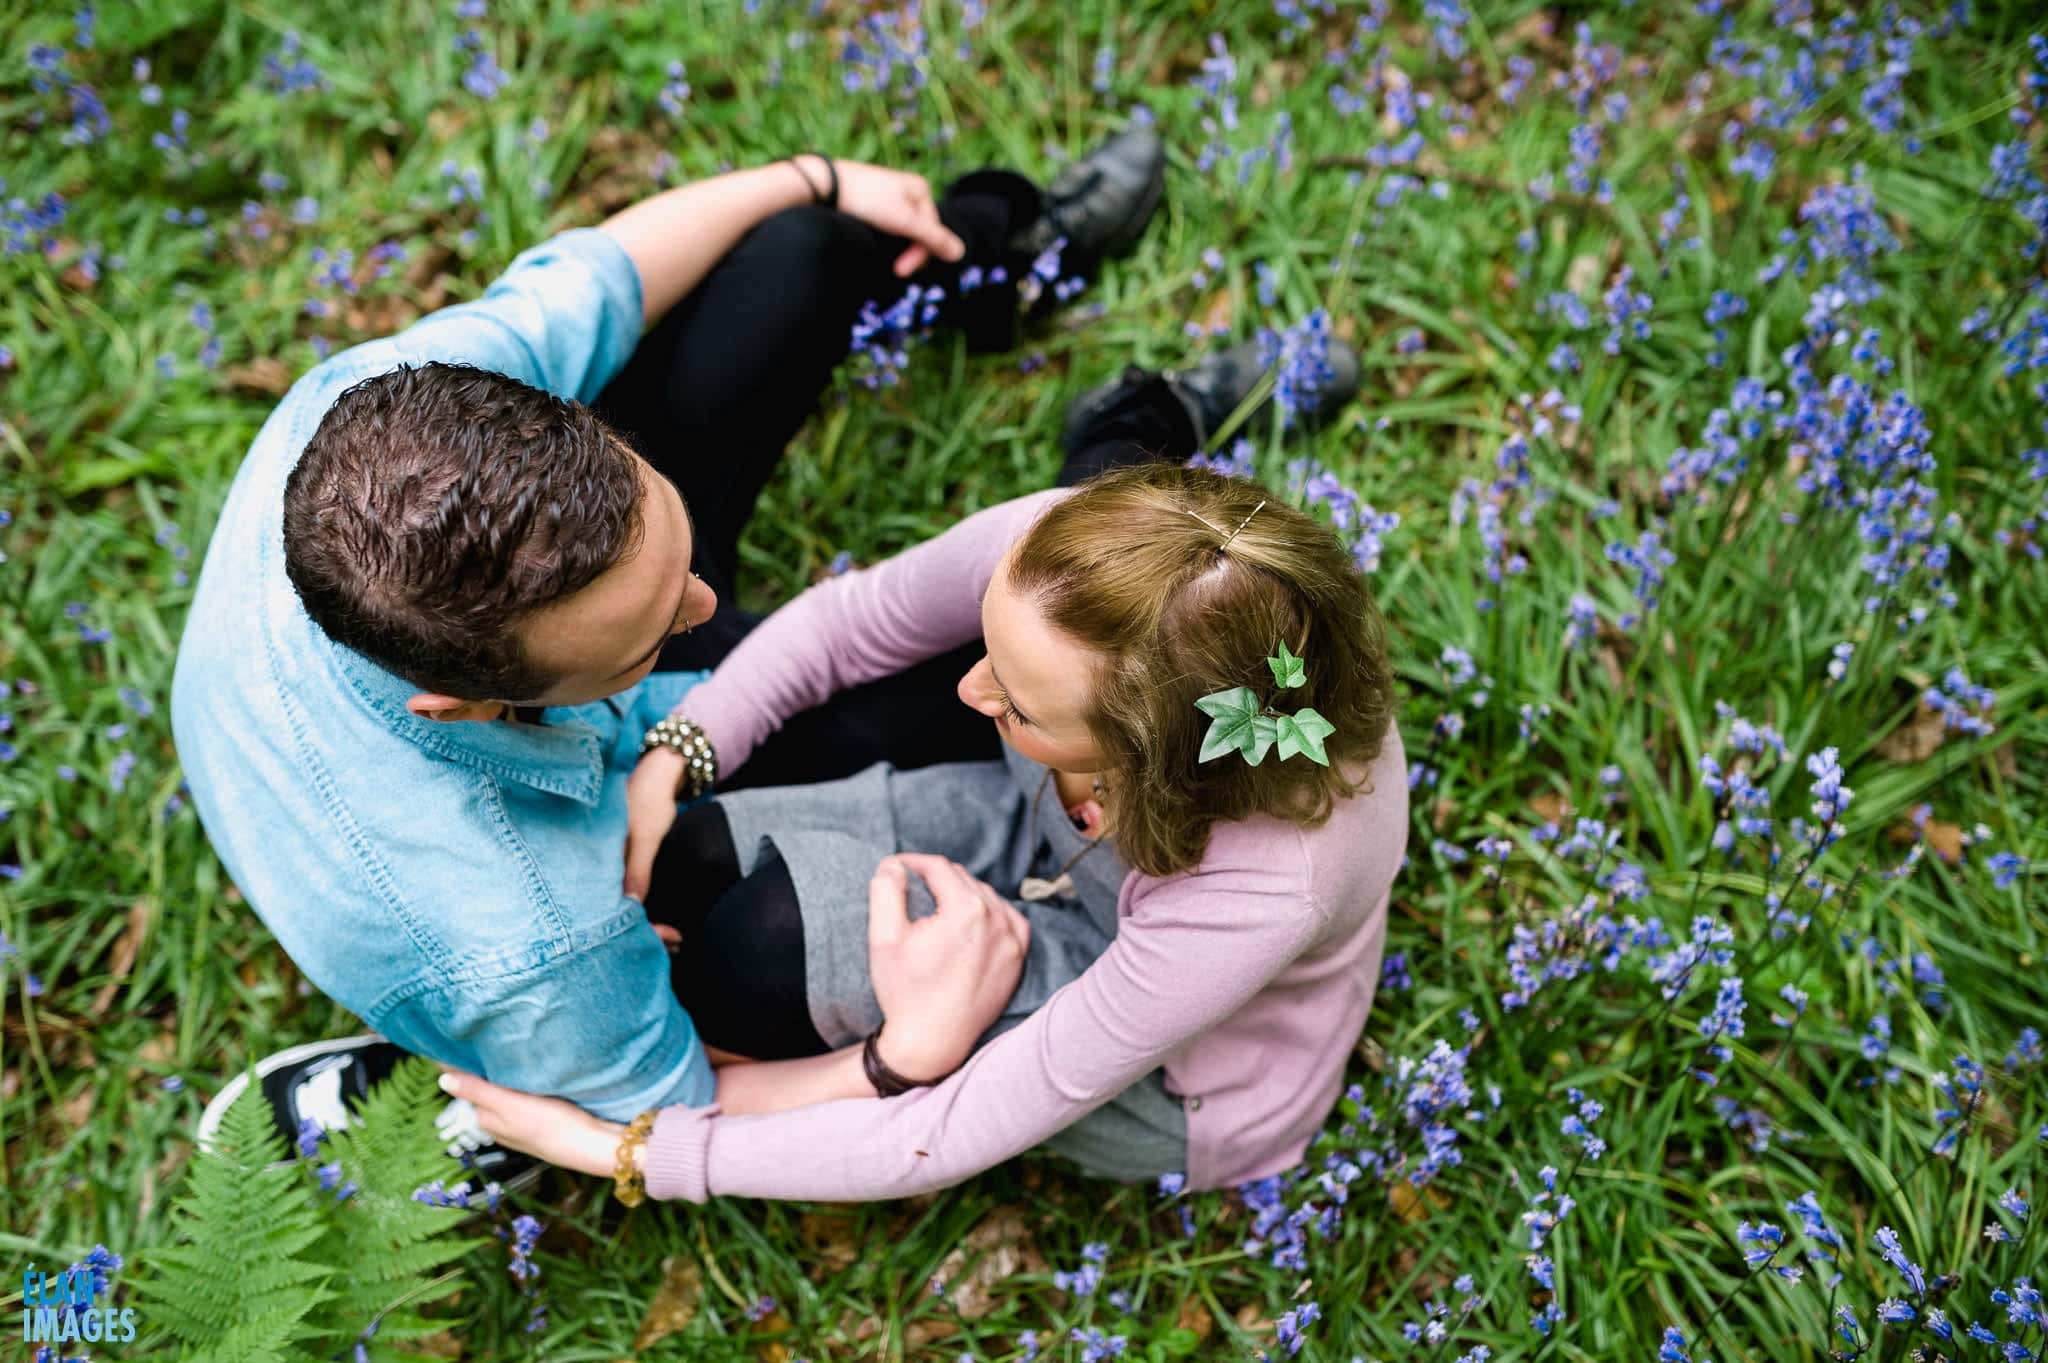 Engagement Photo Shoot in the Bluebell Woods near Bristol 22